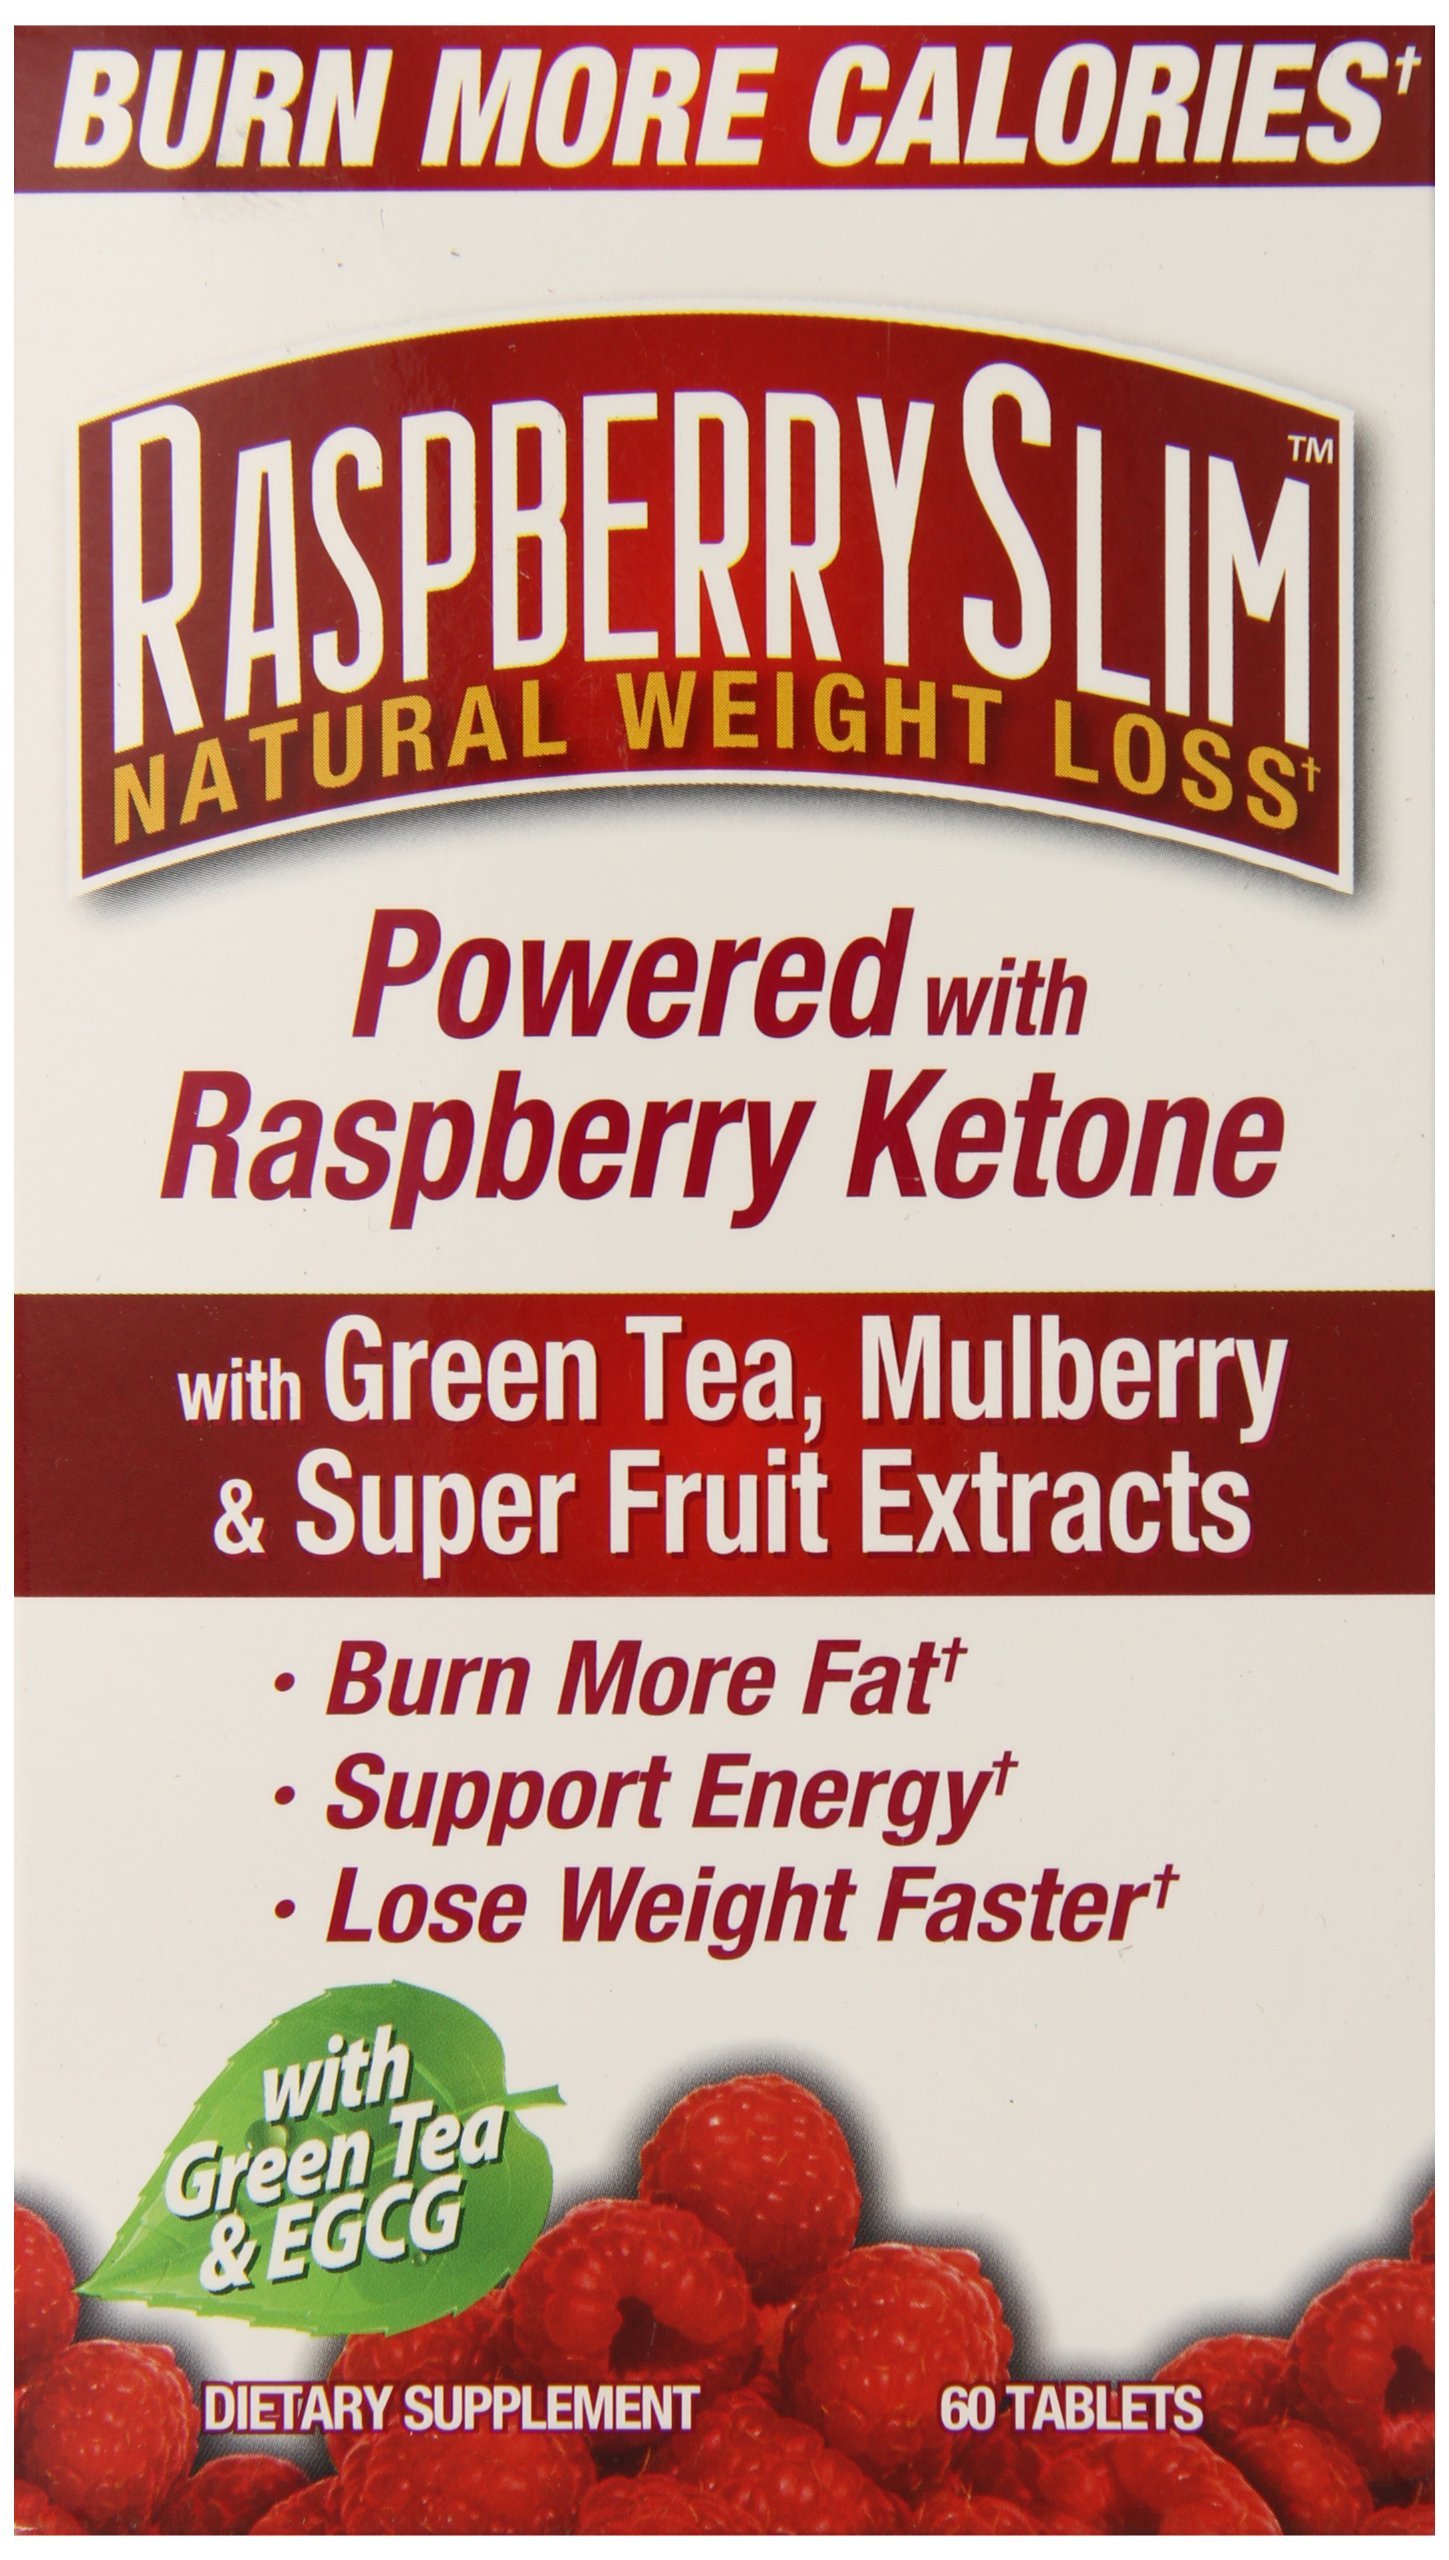 Raspberry Slim Natural Weight Loss, Raspberry Ketone, Green Tea, Super Fruit Extracts, Burn Fat, 60 servings